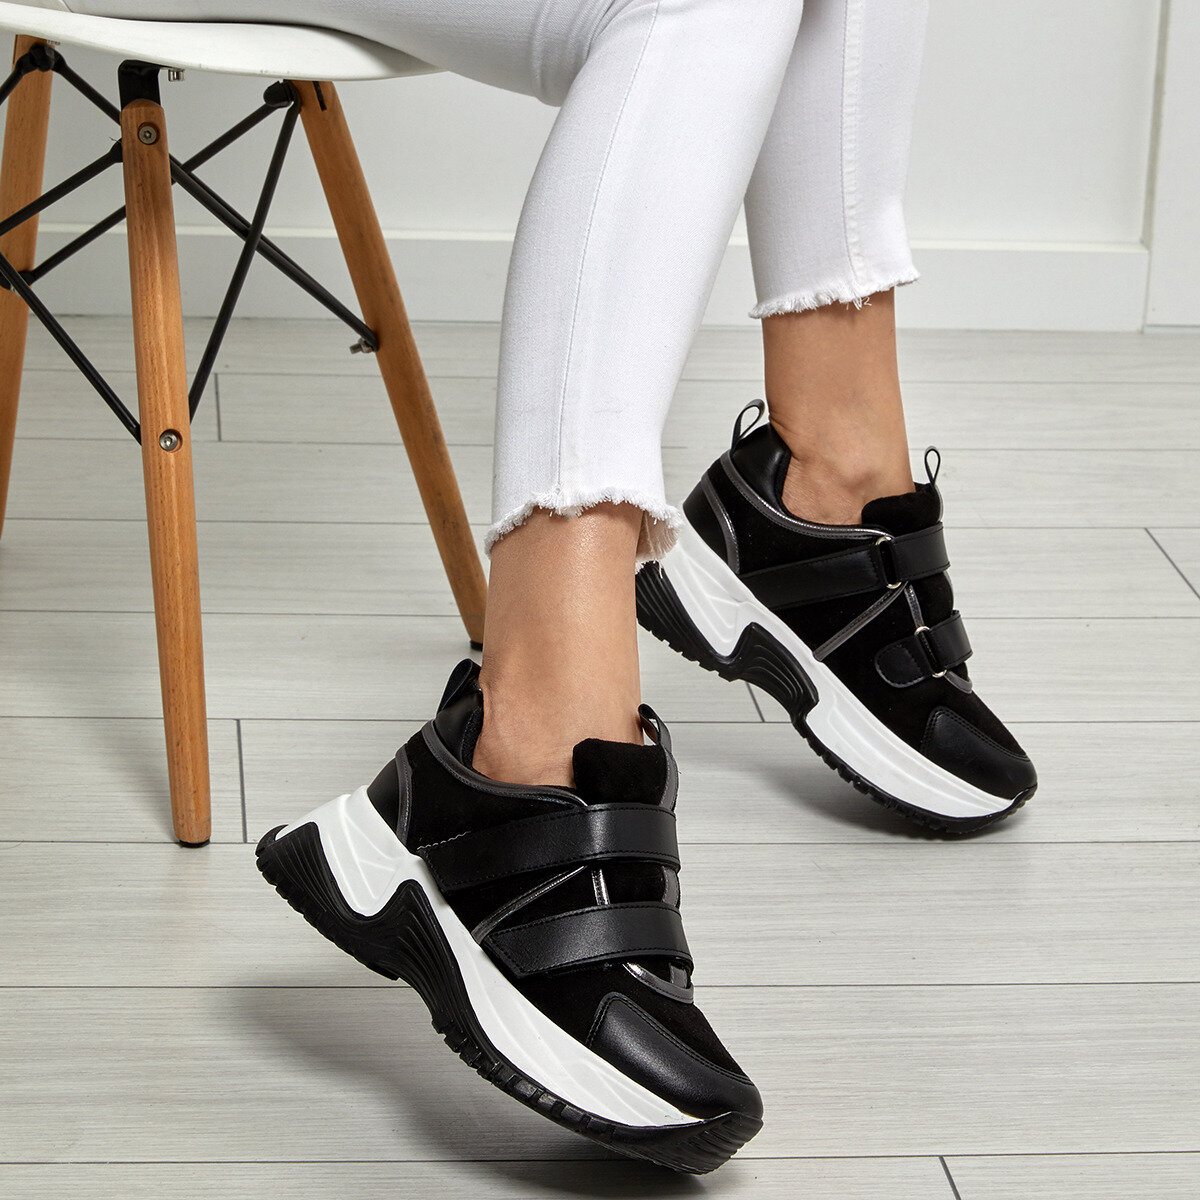 FLO Black Women Sneaker Shoes Women Platform Sneakers Lace-up Casual Shoes Designer Old Dad Female Fashion Sneakers BUTIGO 19SF-2057